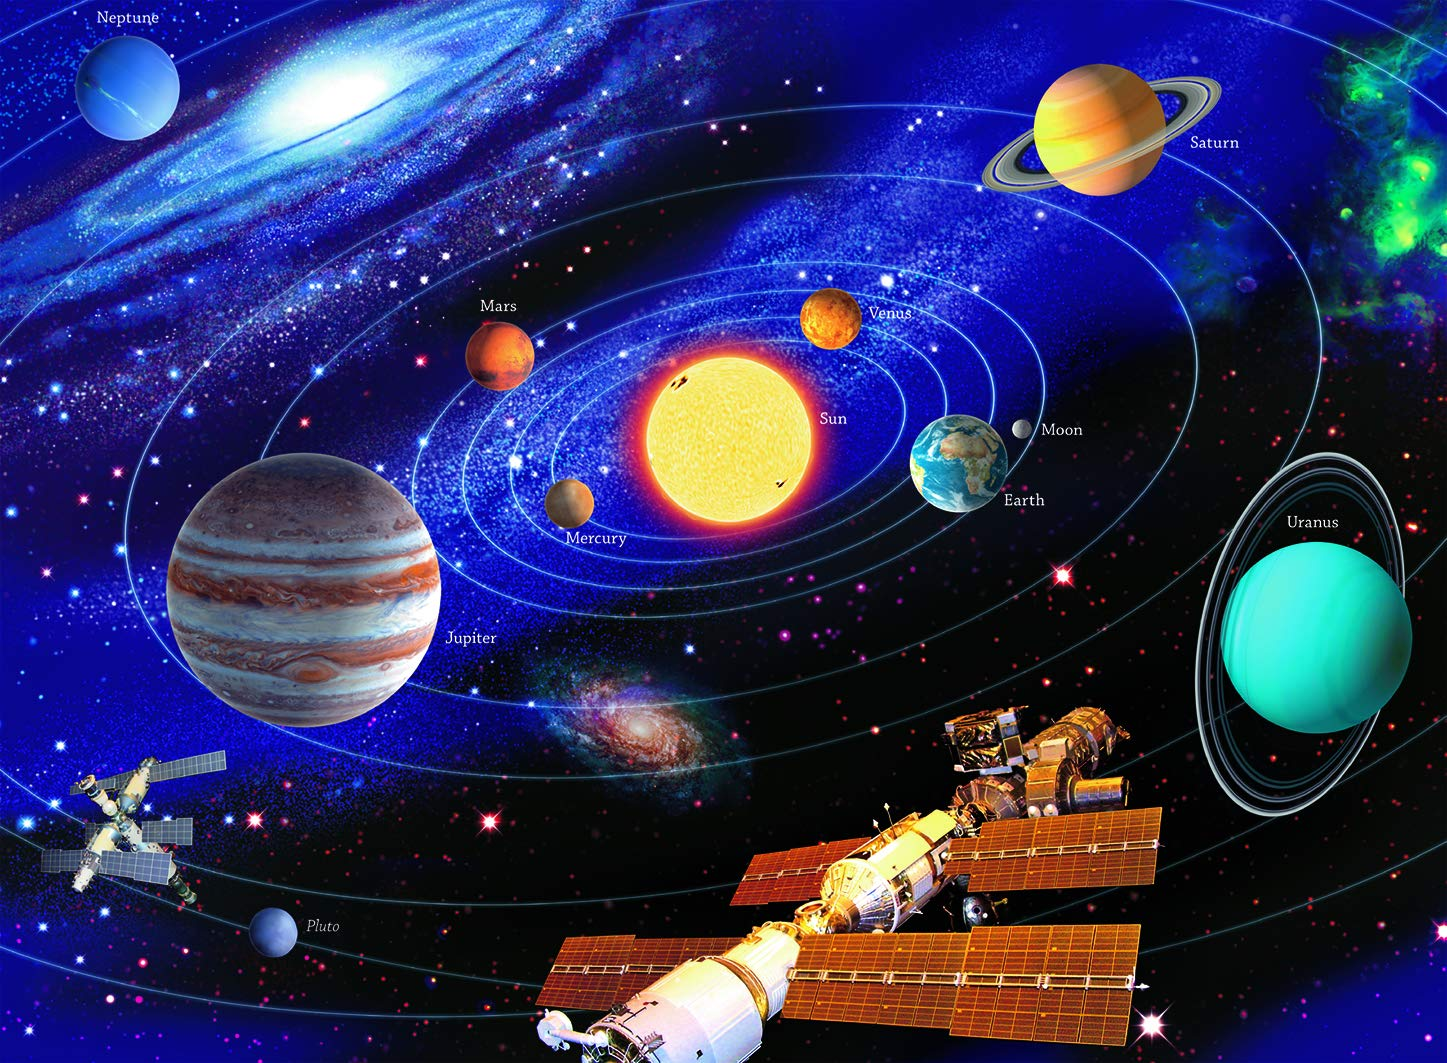 Ravensburger The Solar System - 200 Piece Jigsaw Puzzle for Kids – Every Piece is Unique, Pieces Fit Together Perfectly